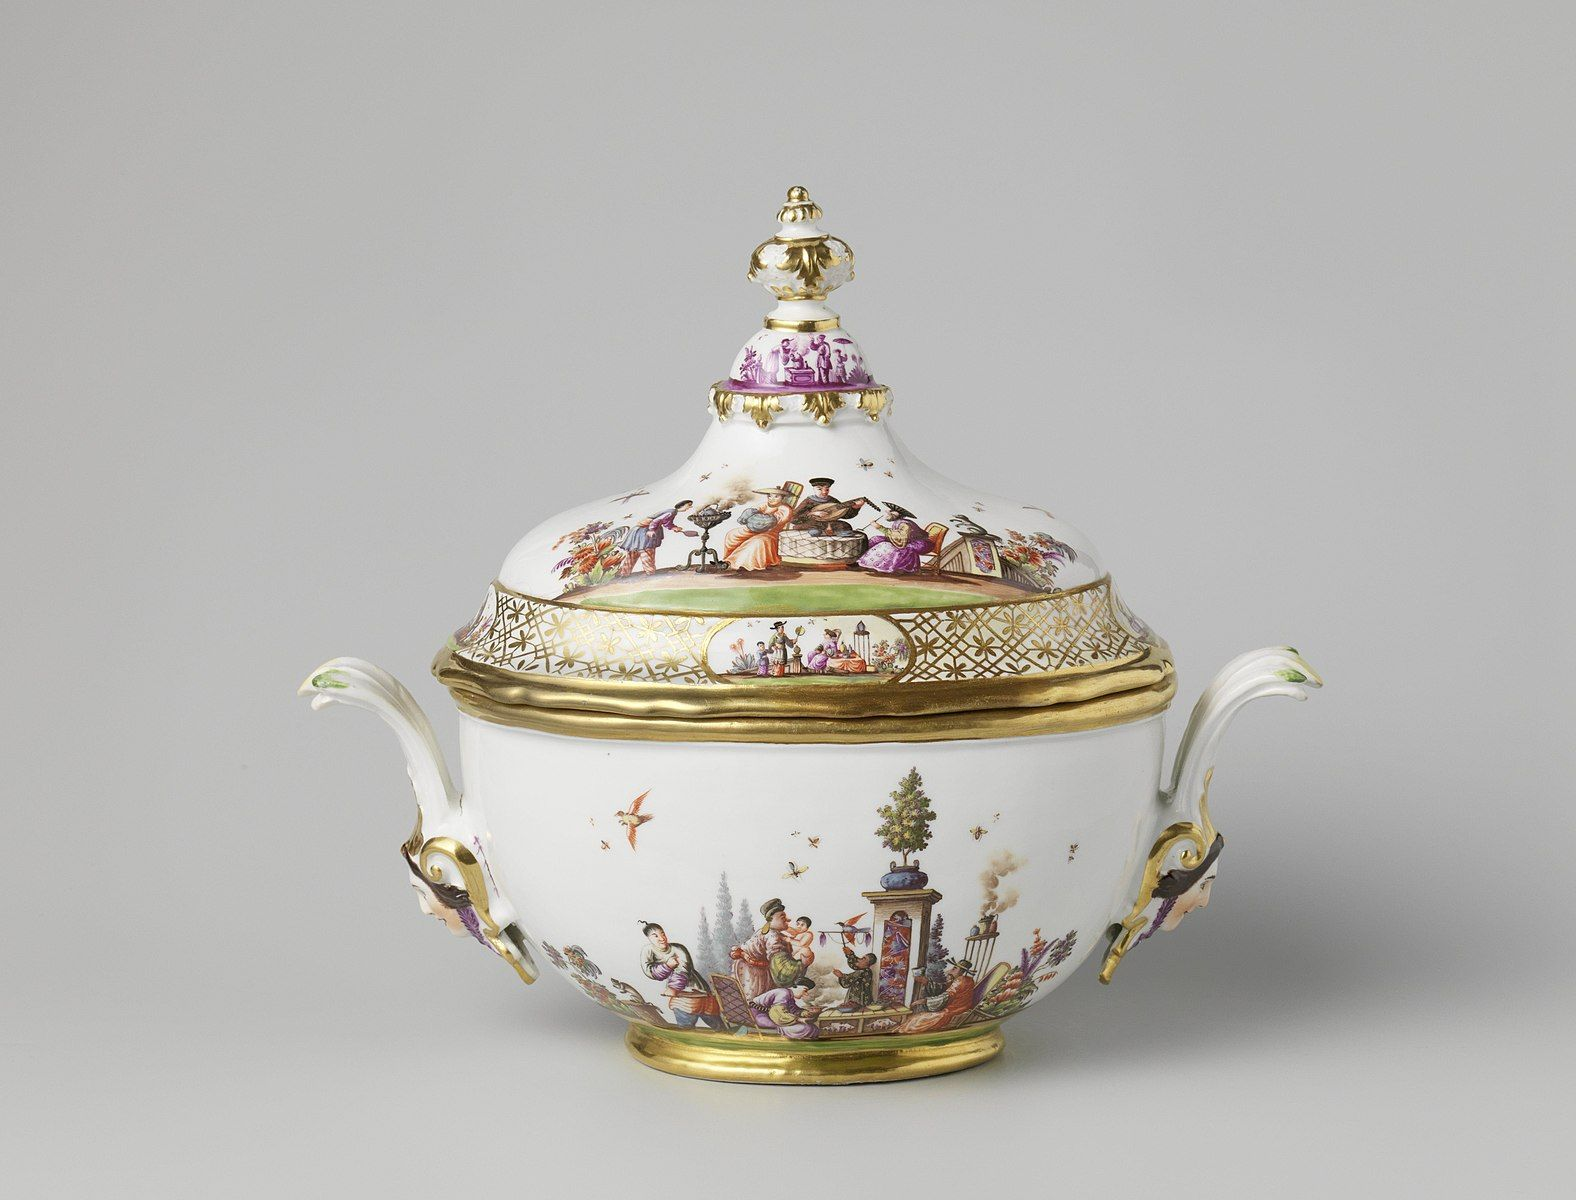 Around 100 pieces of Meissen porcelain will be auctioned by Sotheby's